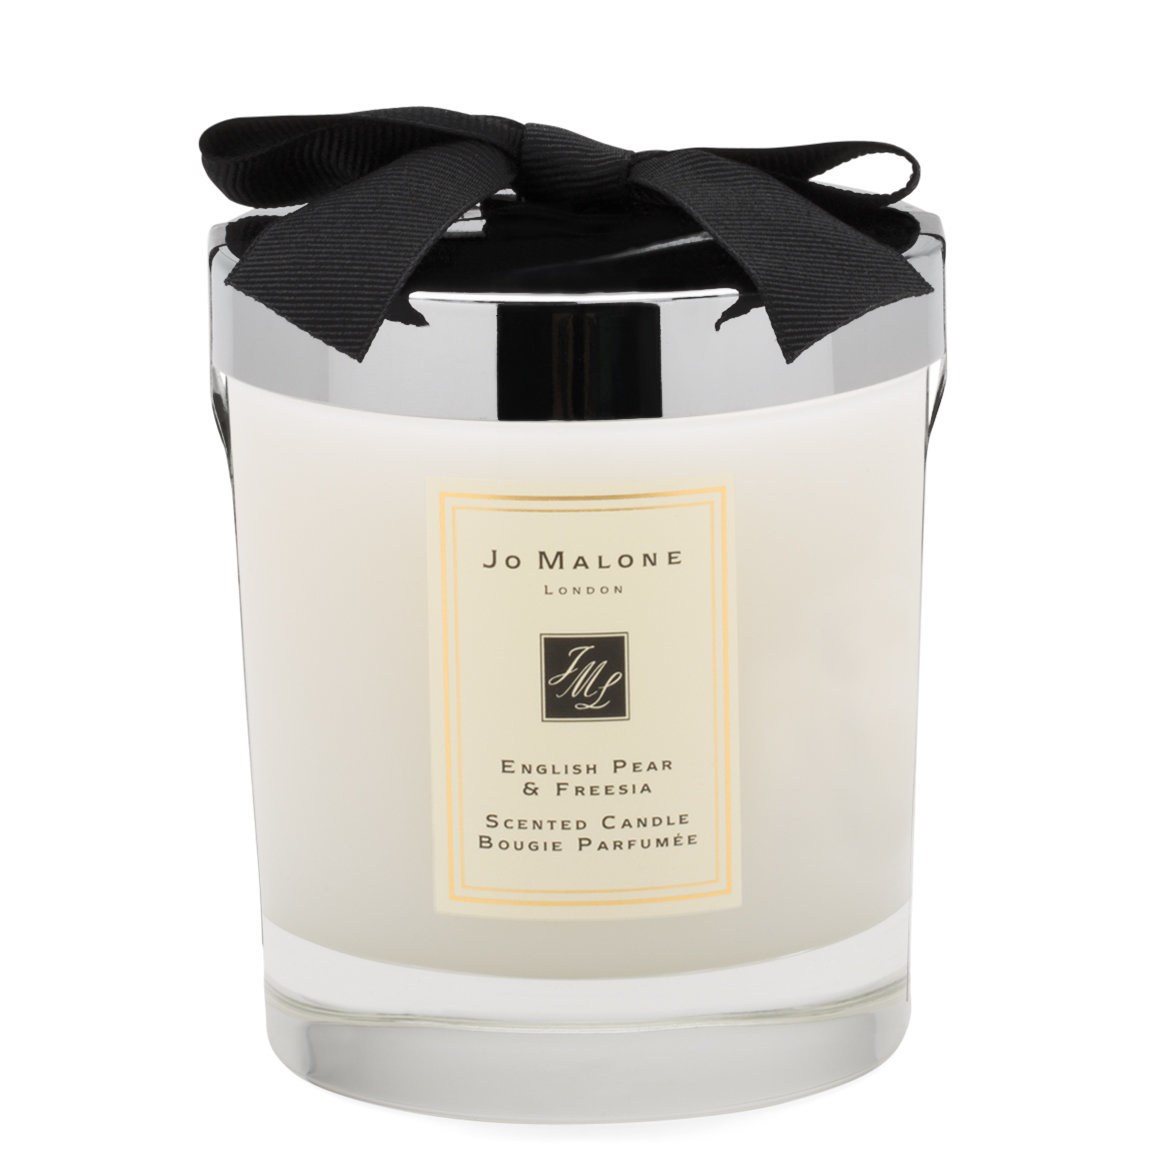 Jo Malone London English Pear & Freesia Scented Candle 200g Home product smear.